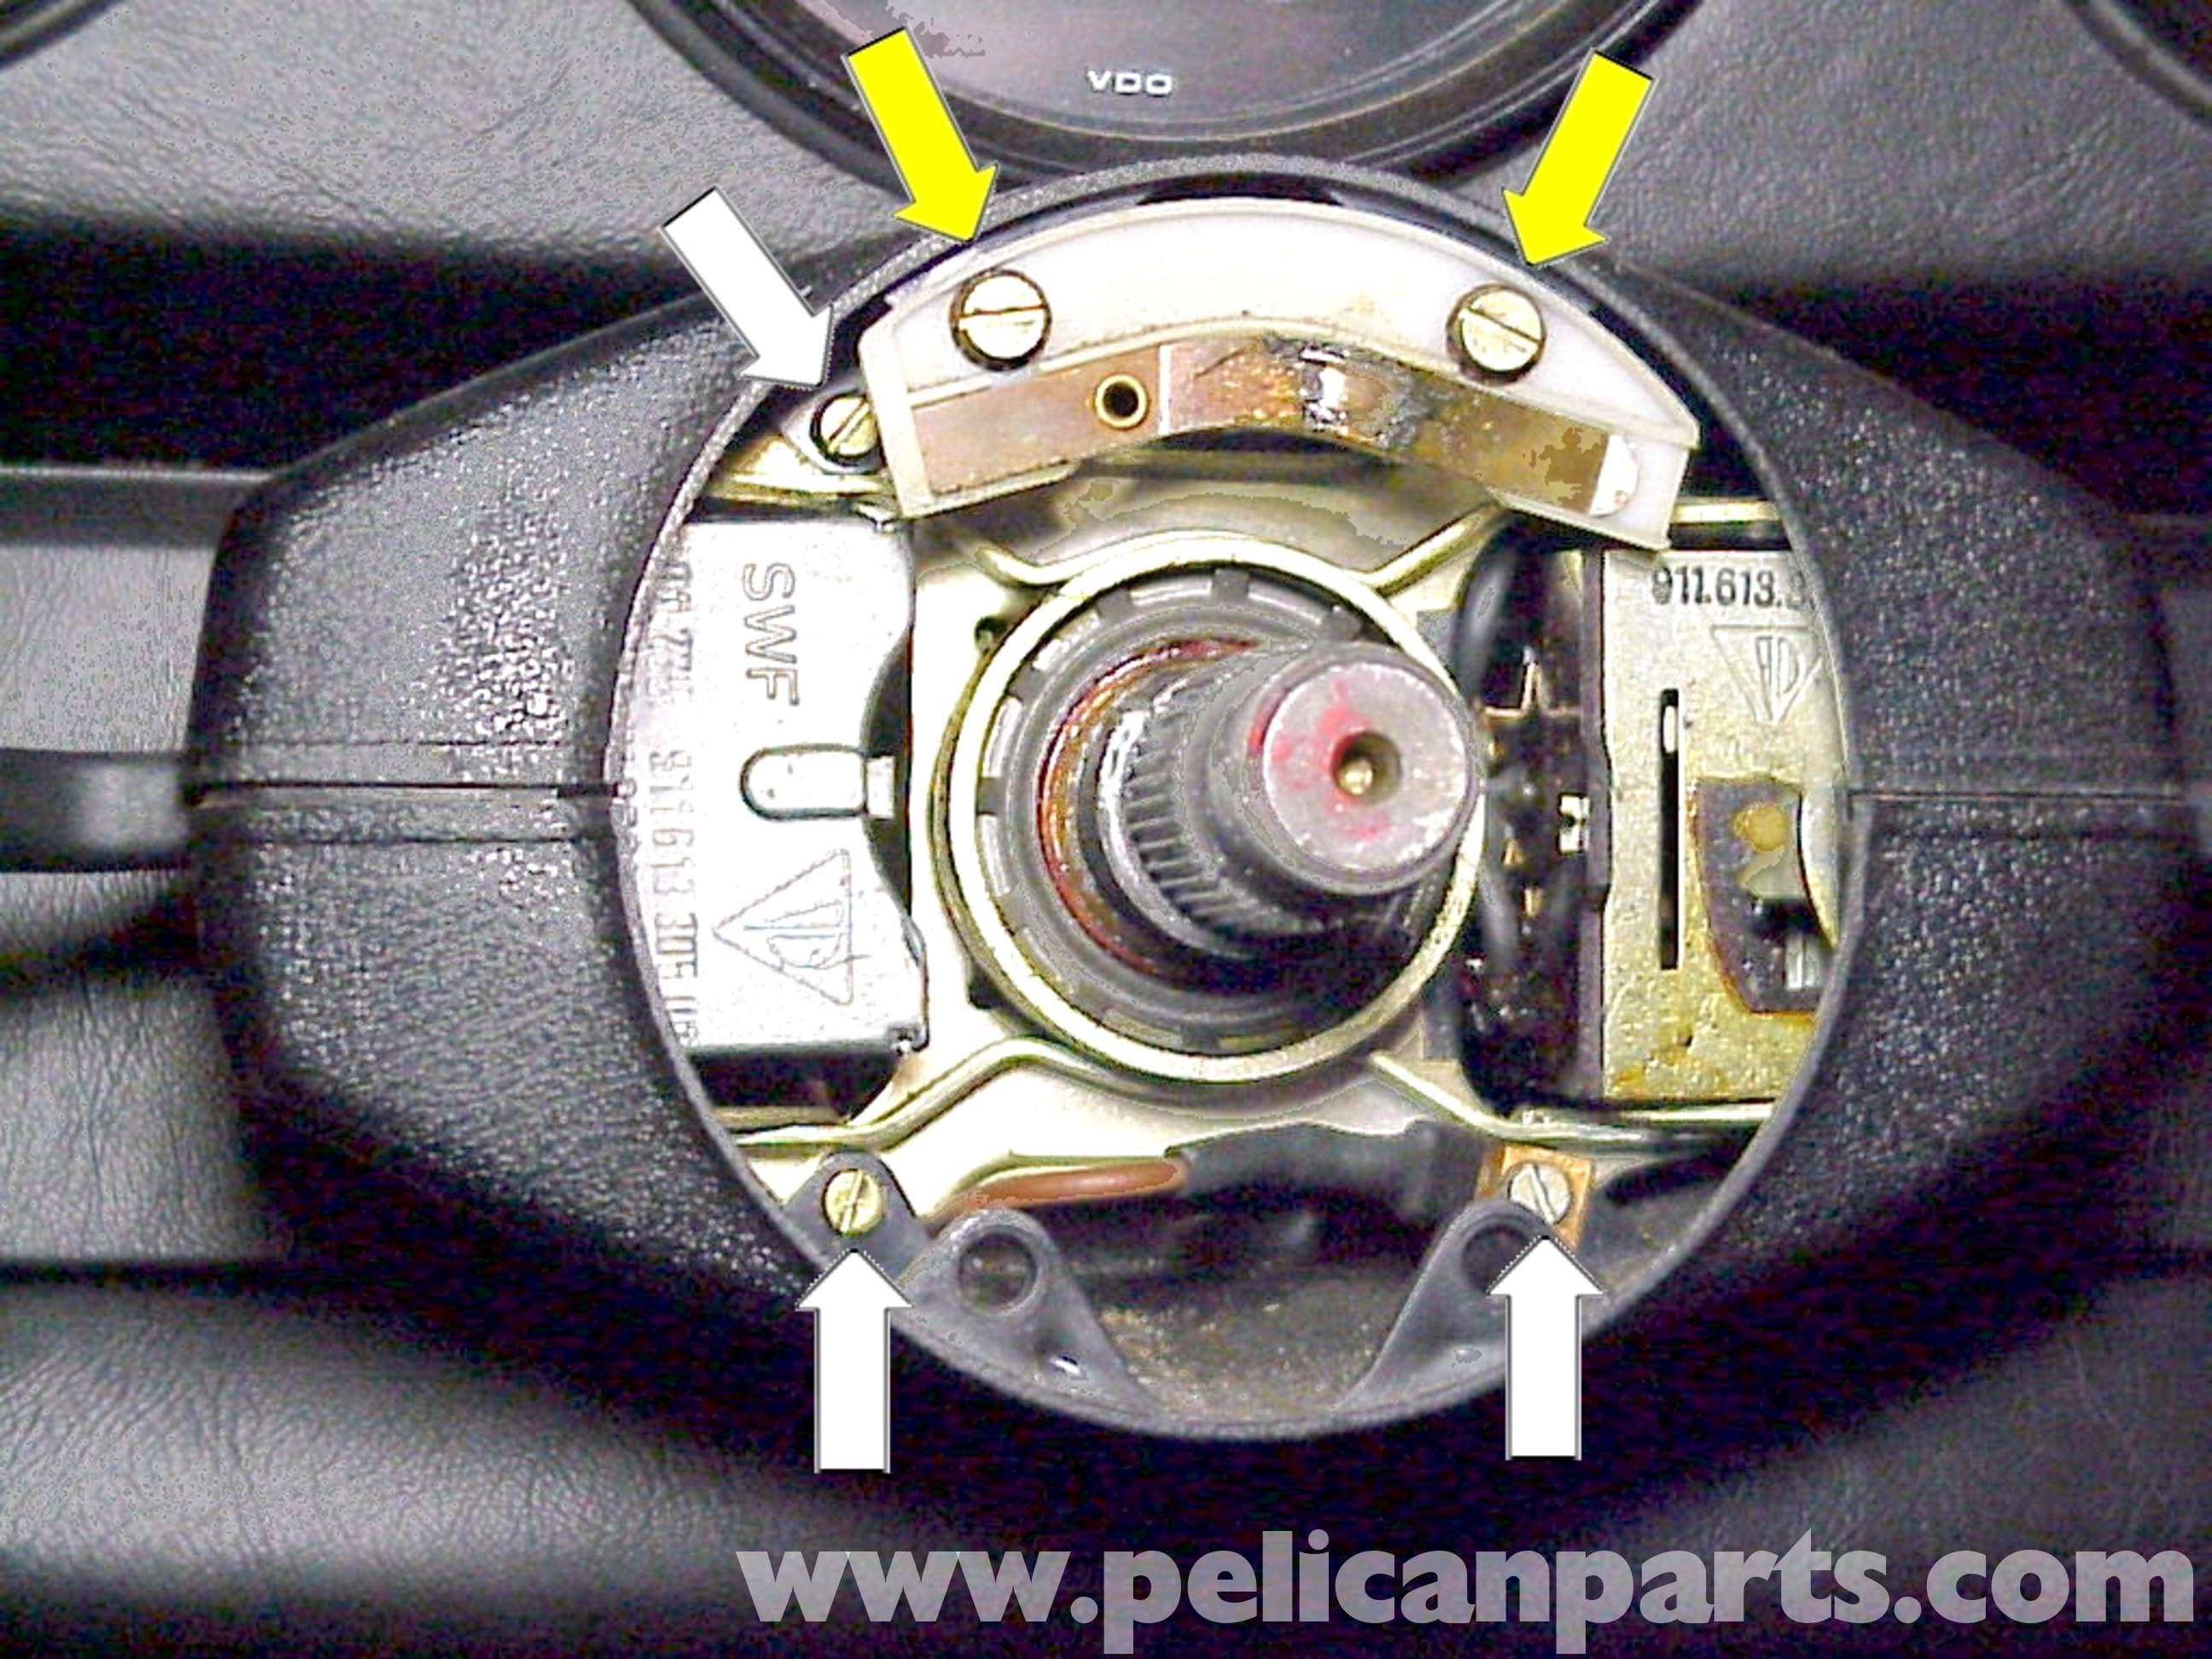 Porsche 911 Steering Wheel Switch Replacement 1965 89 930 Brakes Diagram Large Image Extra